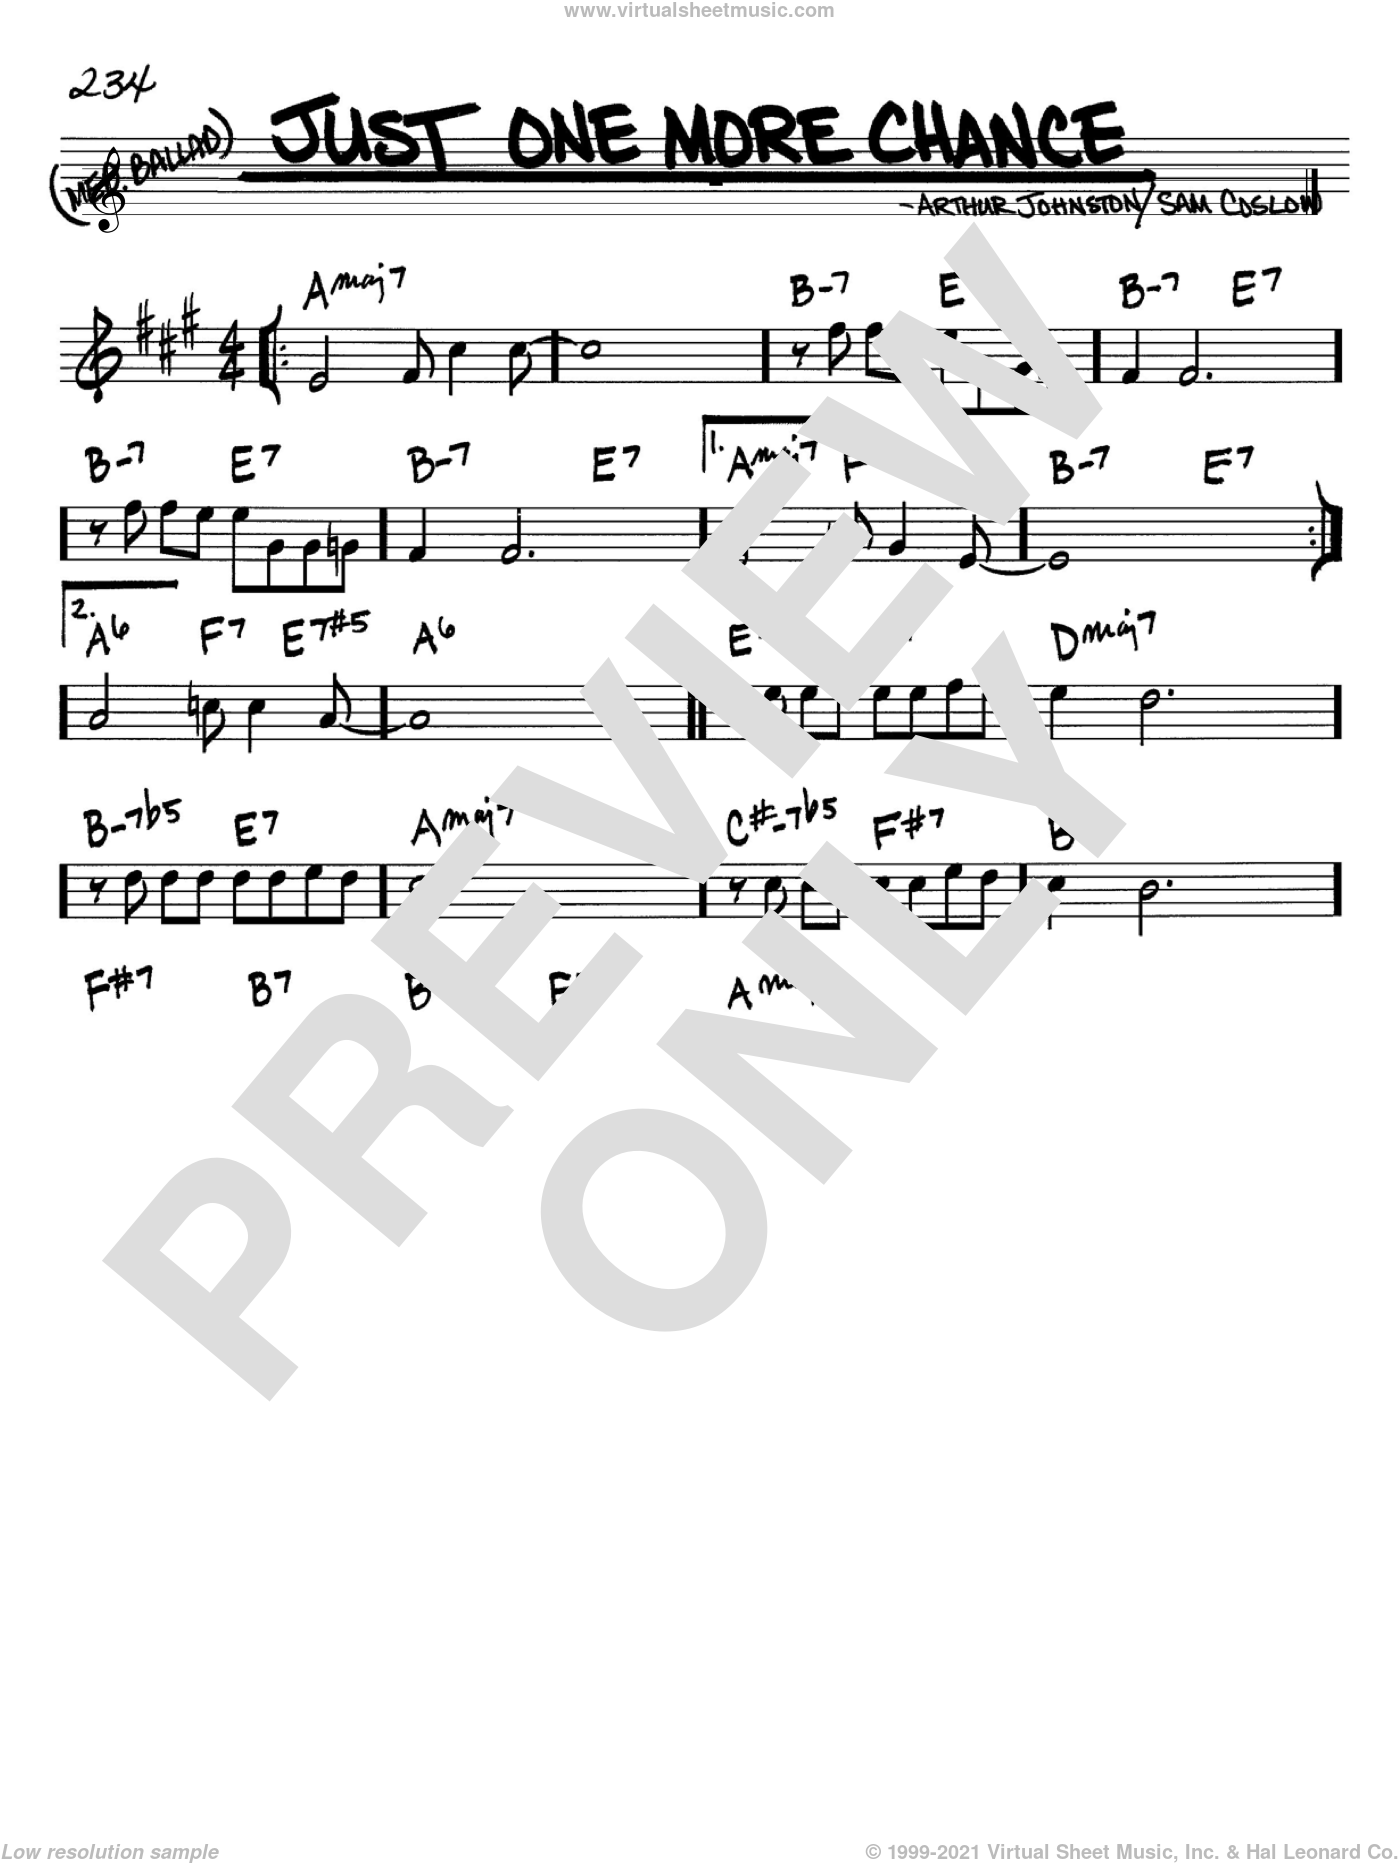 Just One More Chance sheet music for voice and other instruments (Bb) by Sam Coslow, Bing Crosby and Arthur Johnston. Score Image Preview.